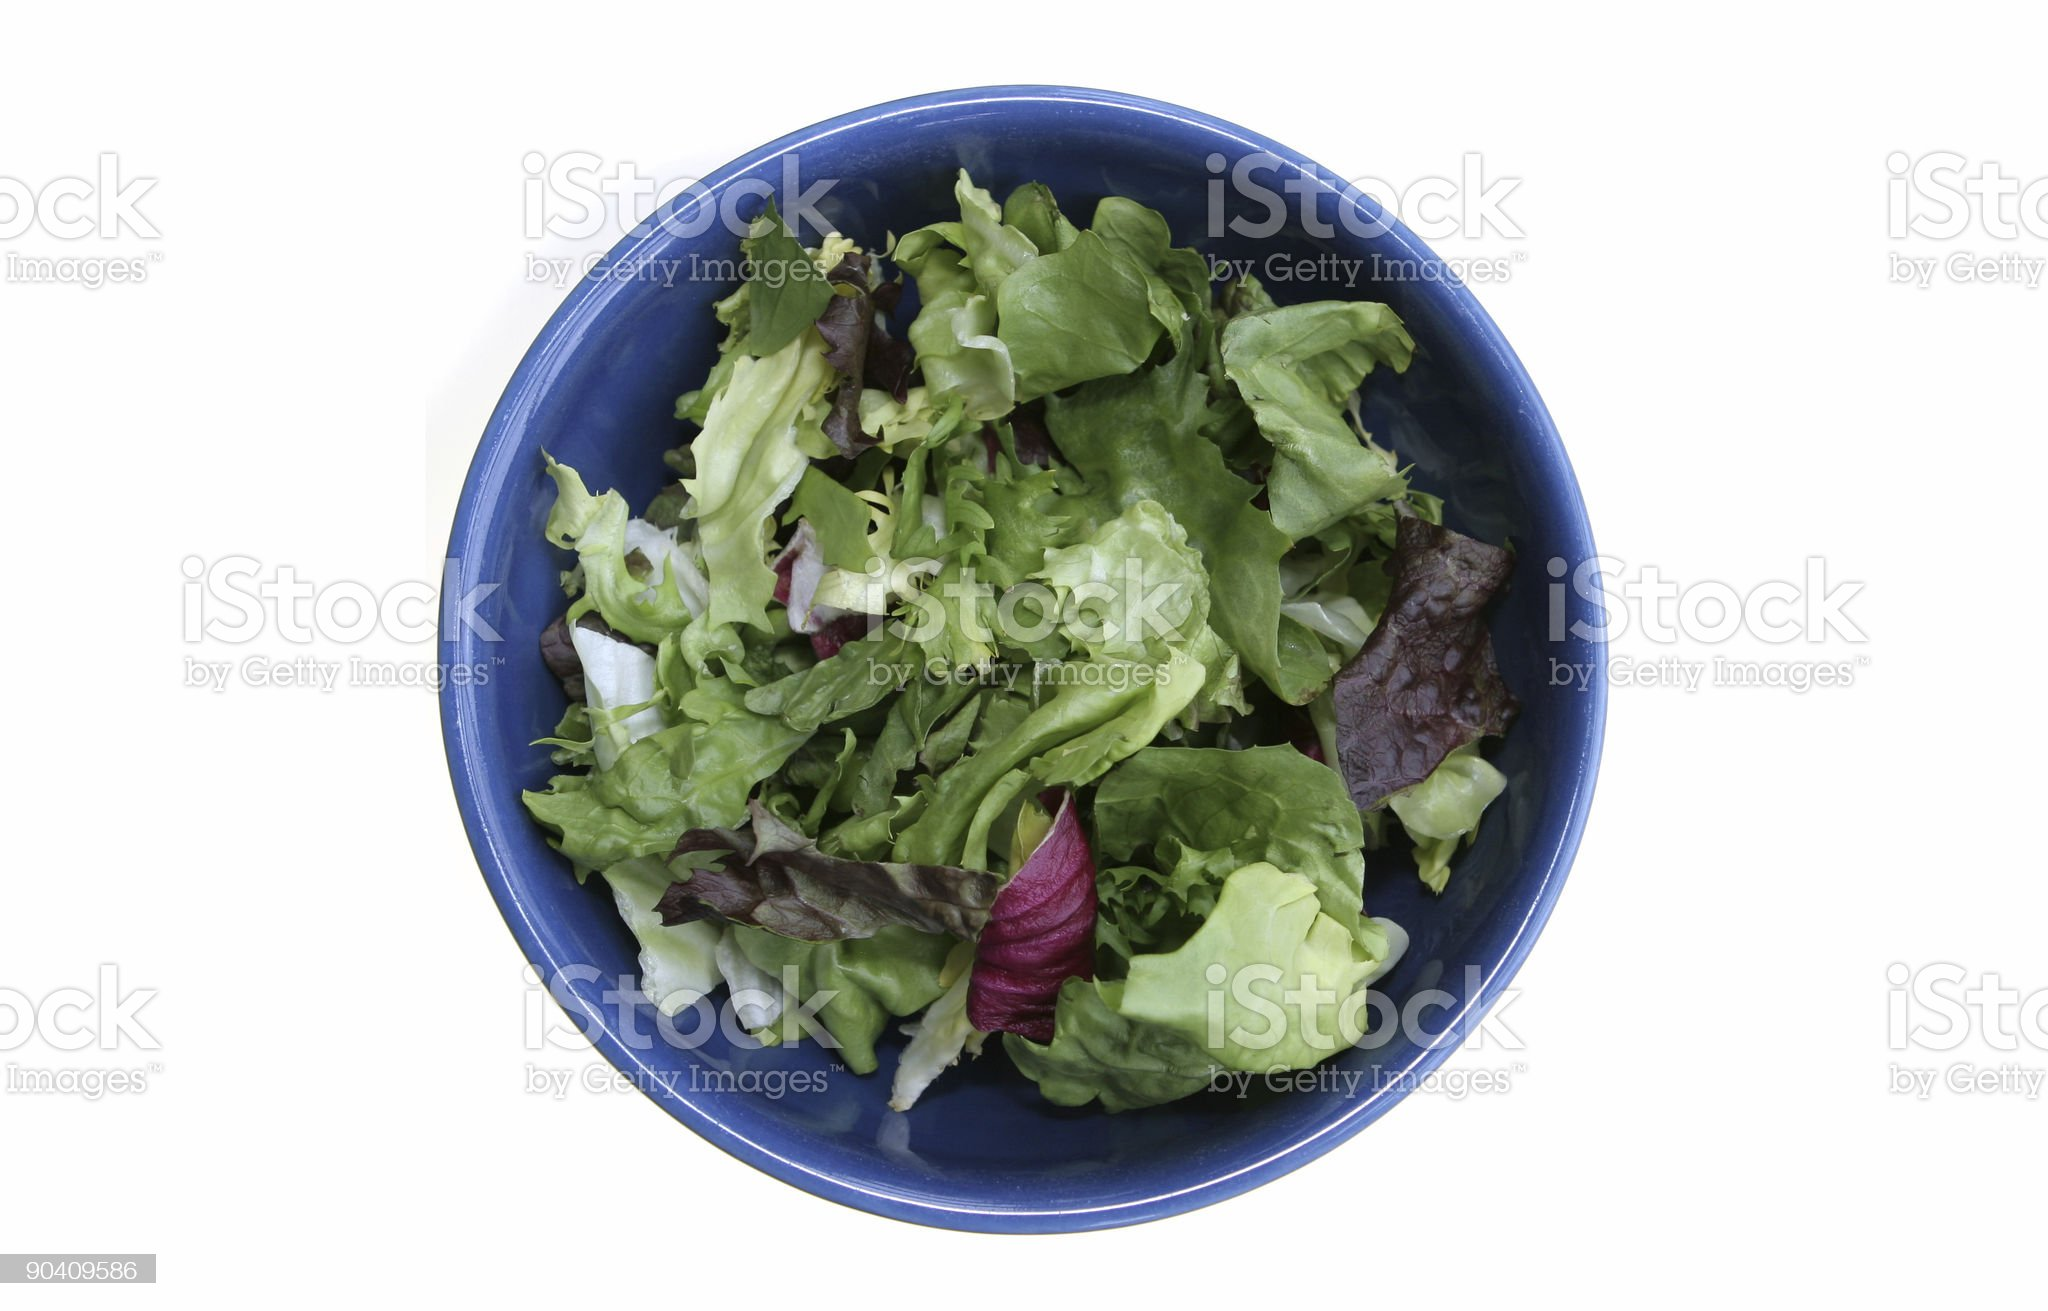 Healthy Green Salad in a Blue Bowl royalty-free stock photo